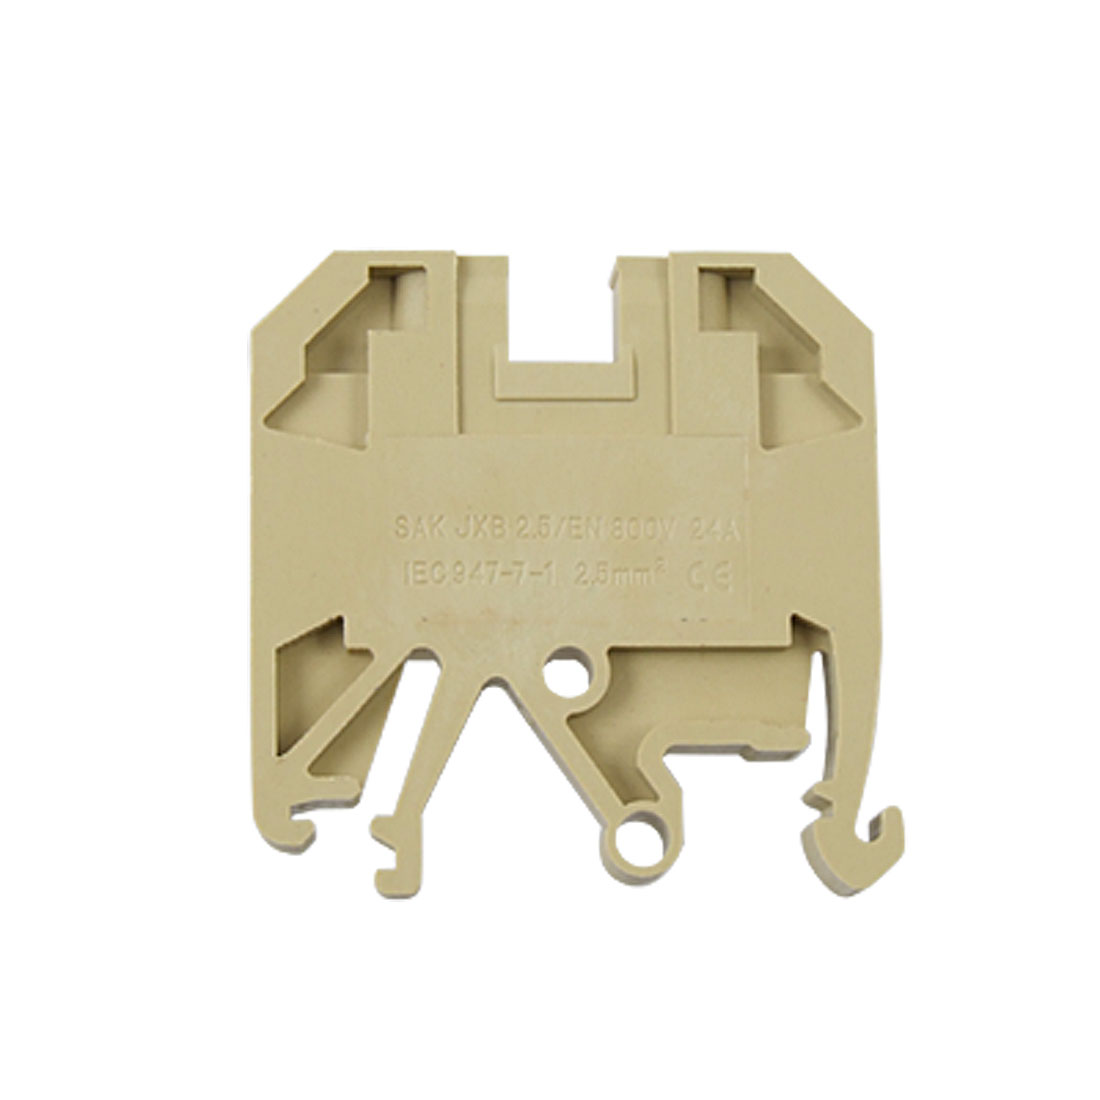 SAK-2.5EN IEC60947-1 Screw Clamp Terminal Block Connector